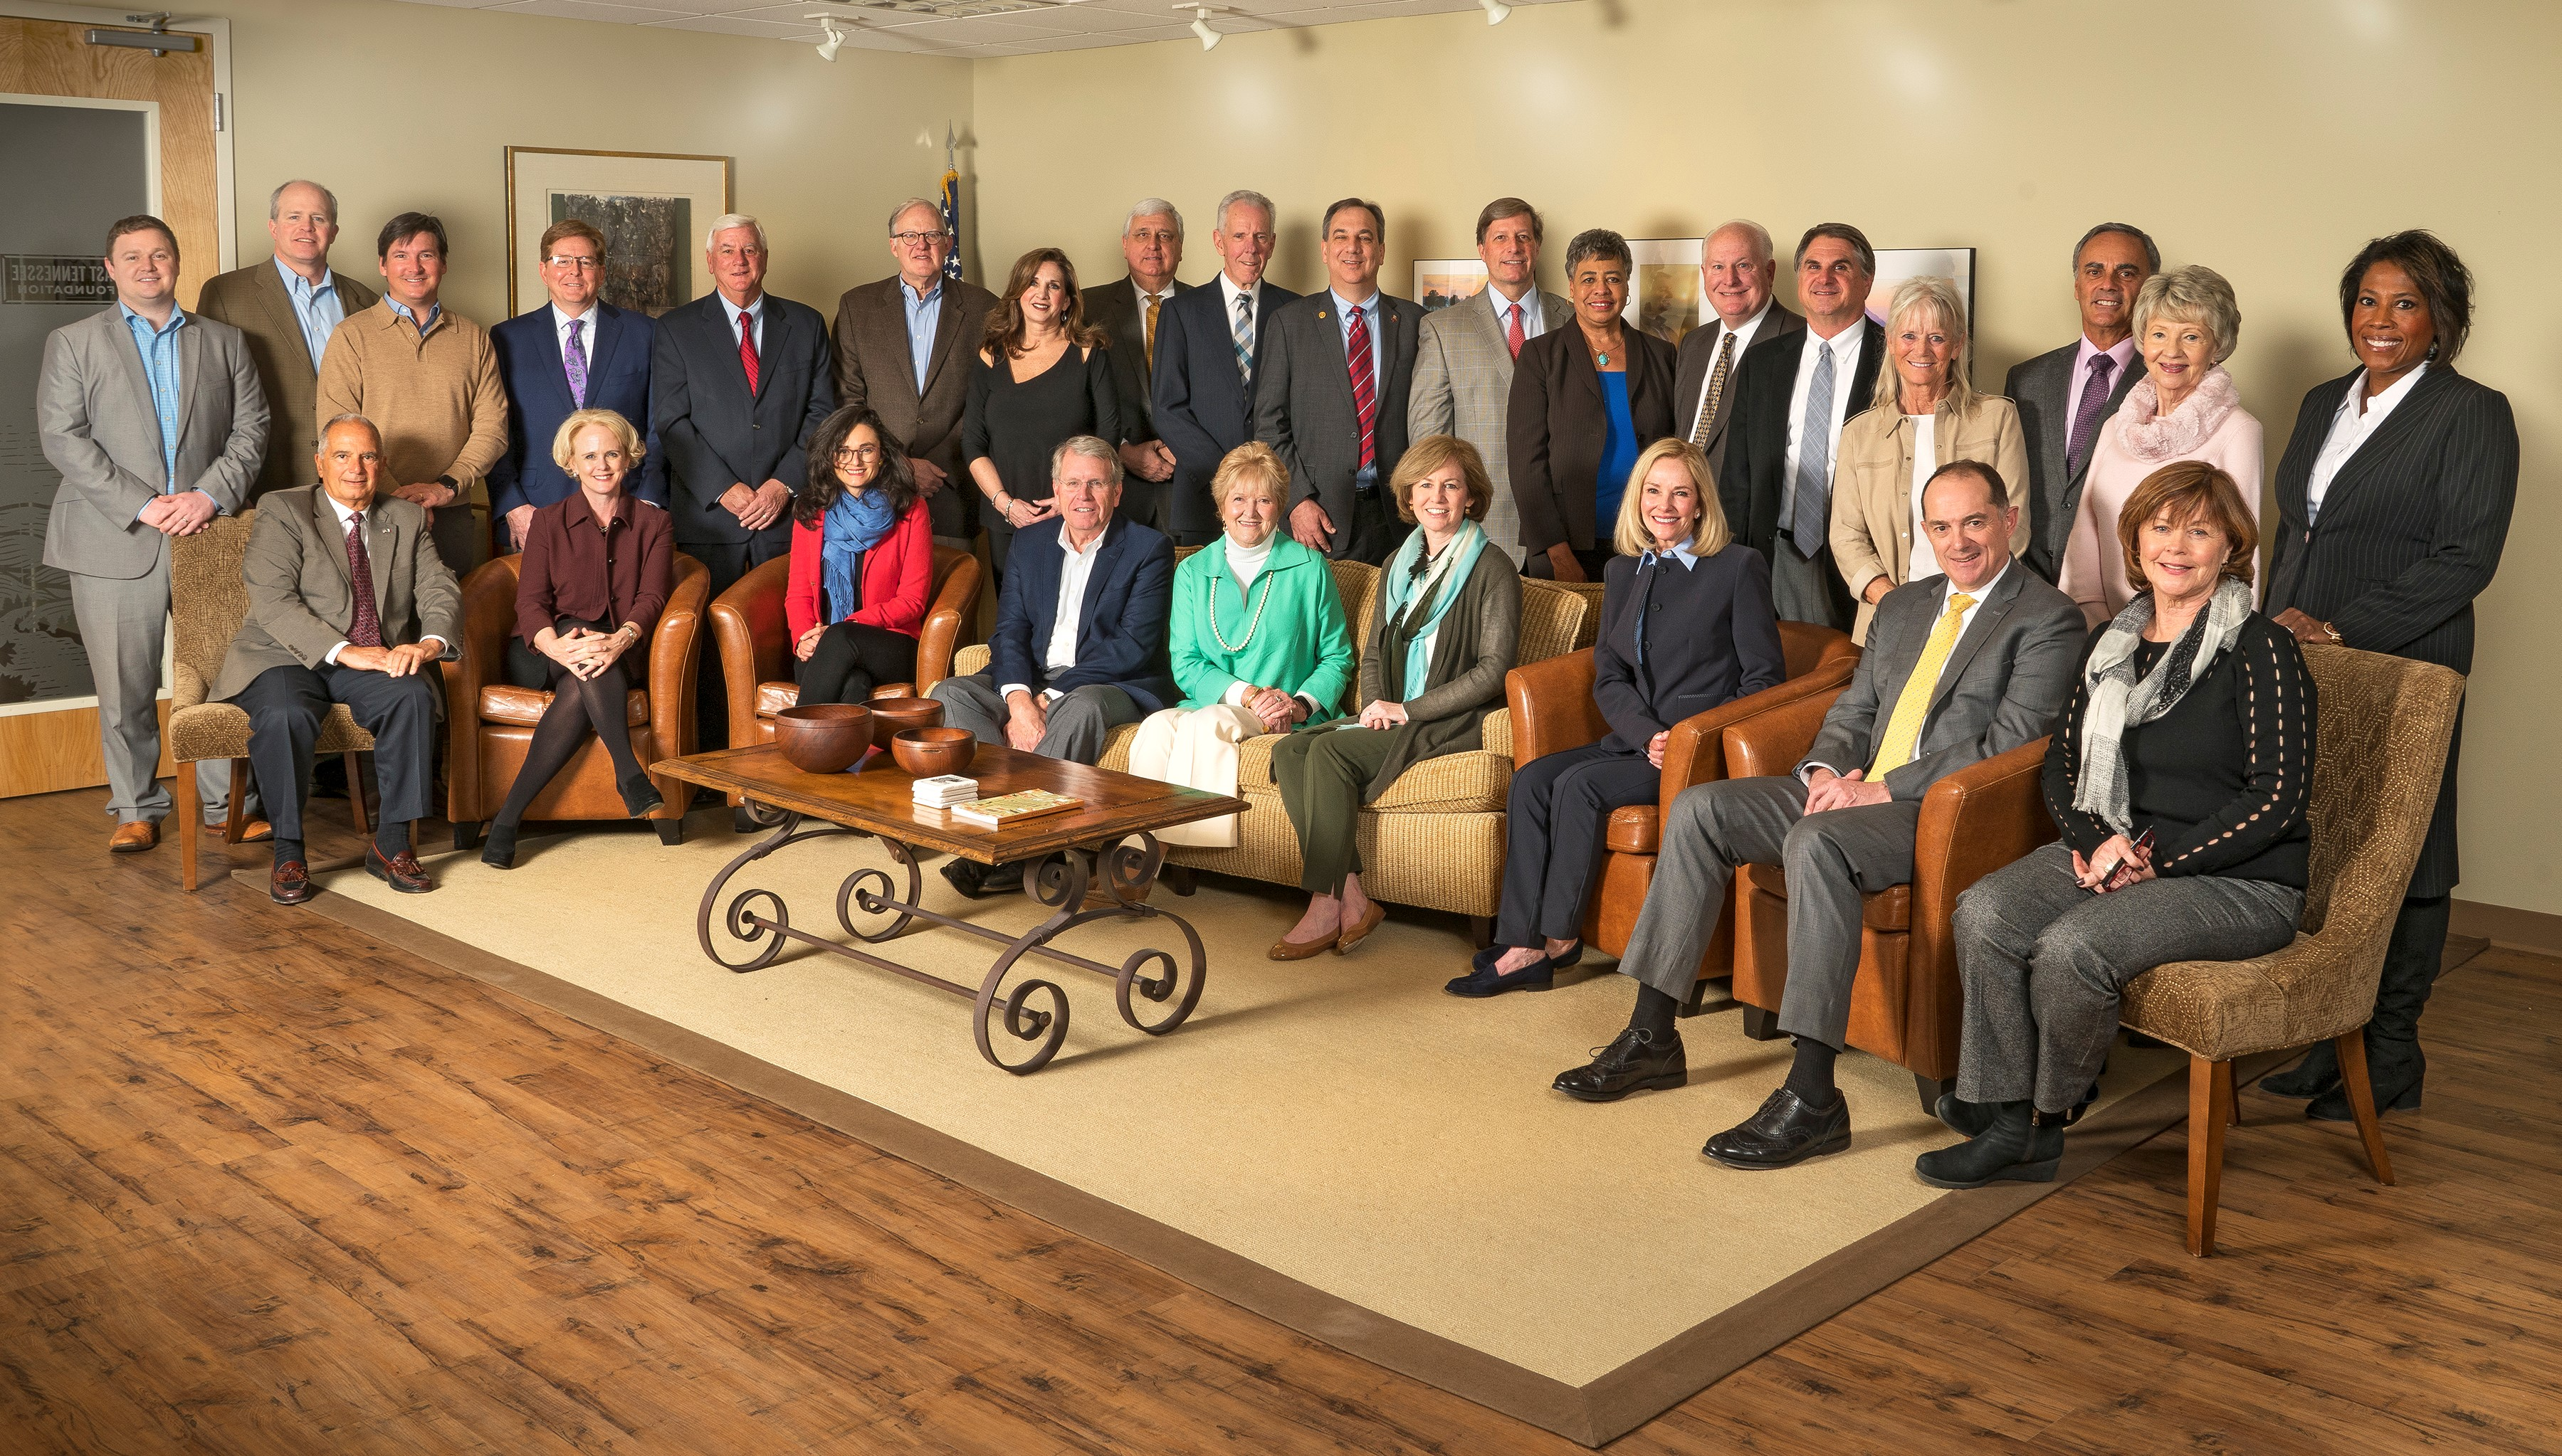 Board of Directors | East Tennessee Foundation